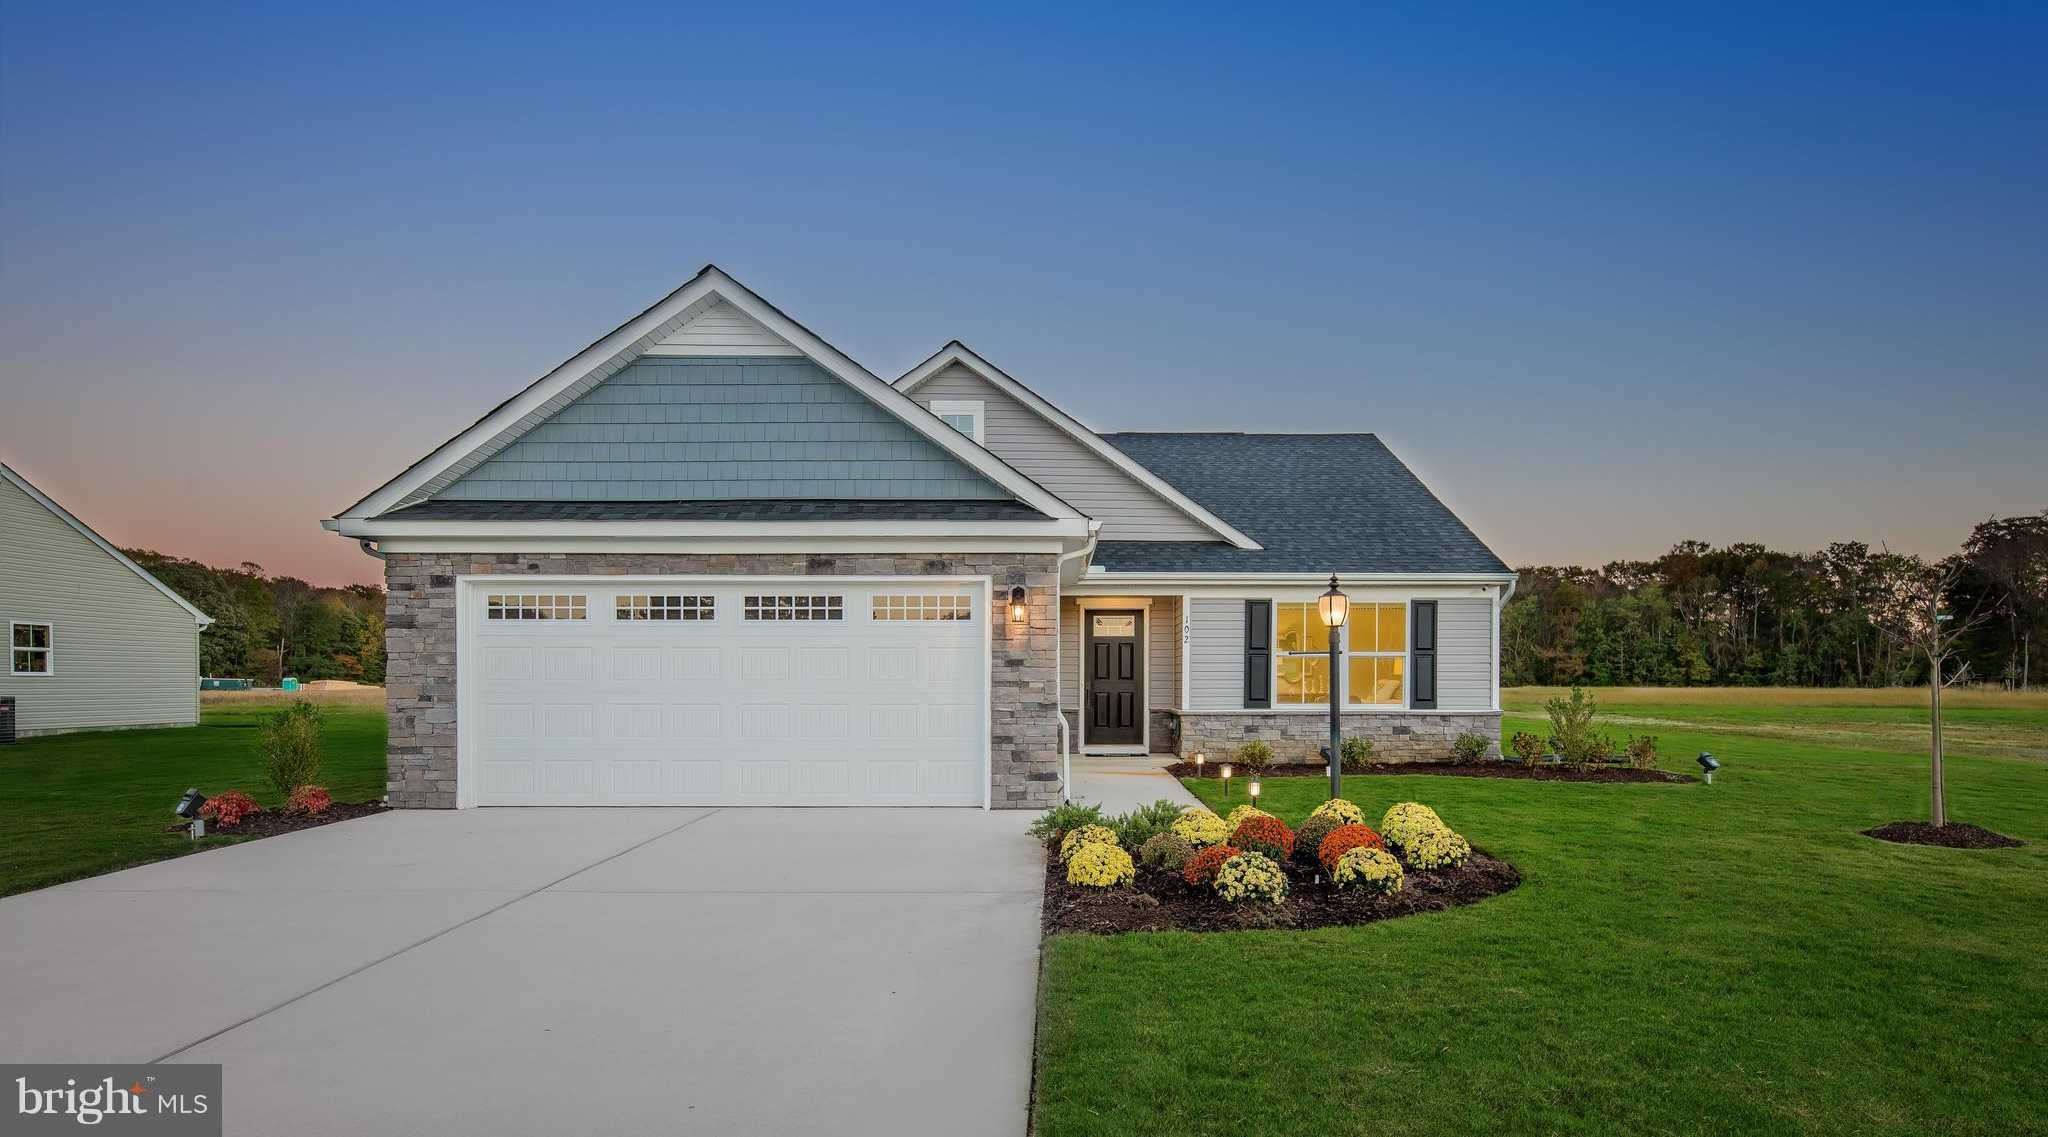 $255,975 - 3Br/2Ba -  for Sale in Arcadia Springs, Martinsburg